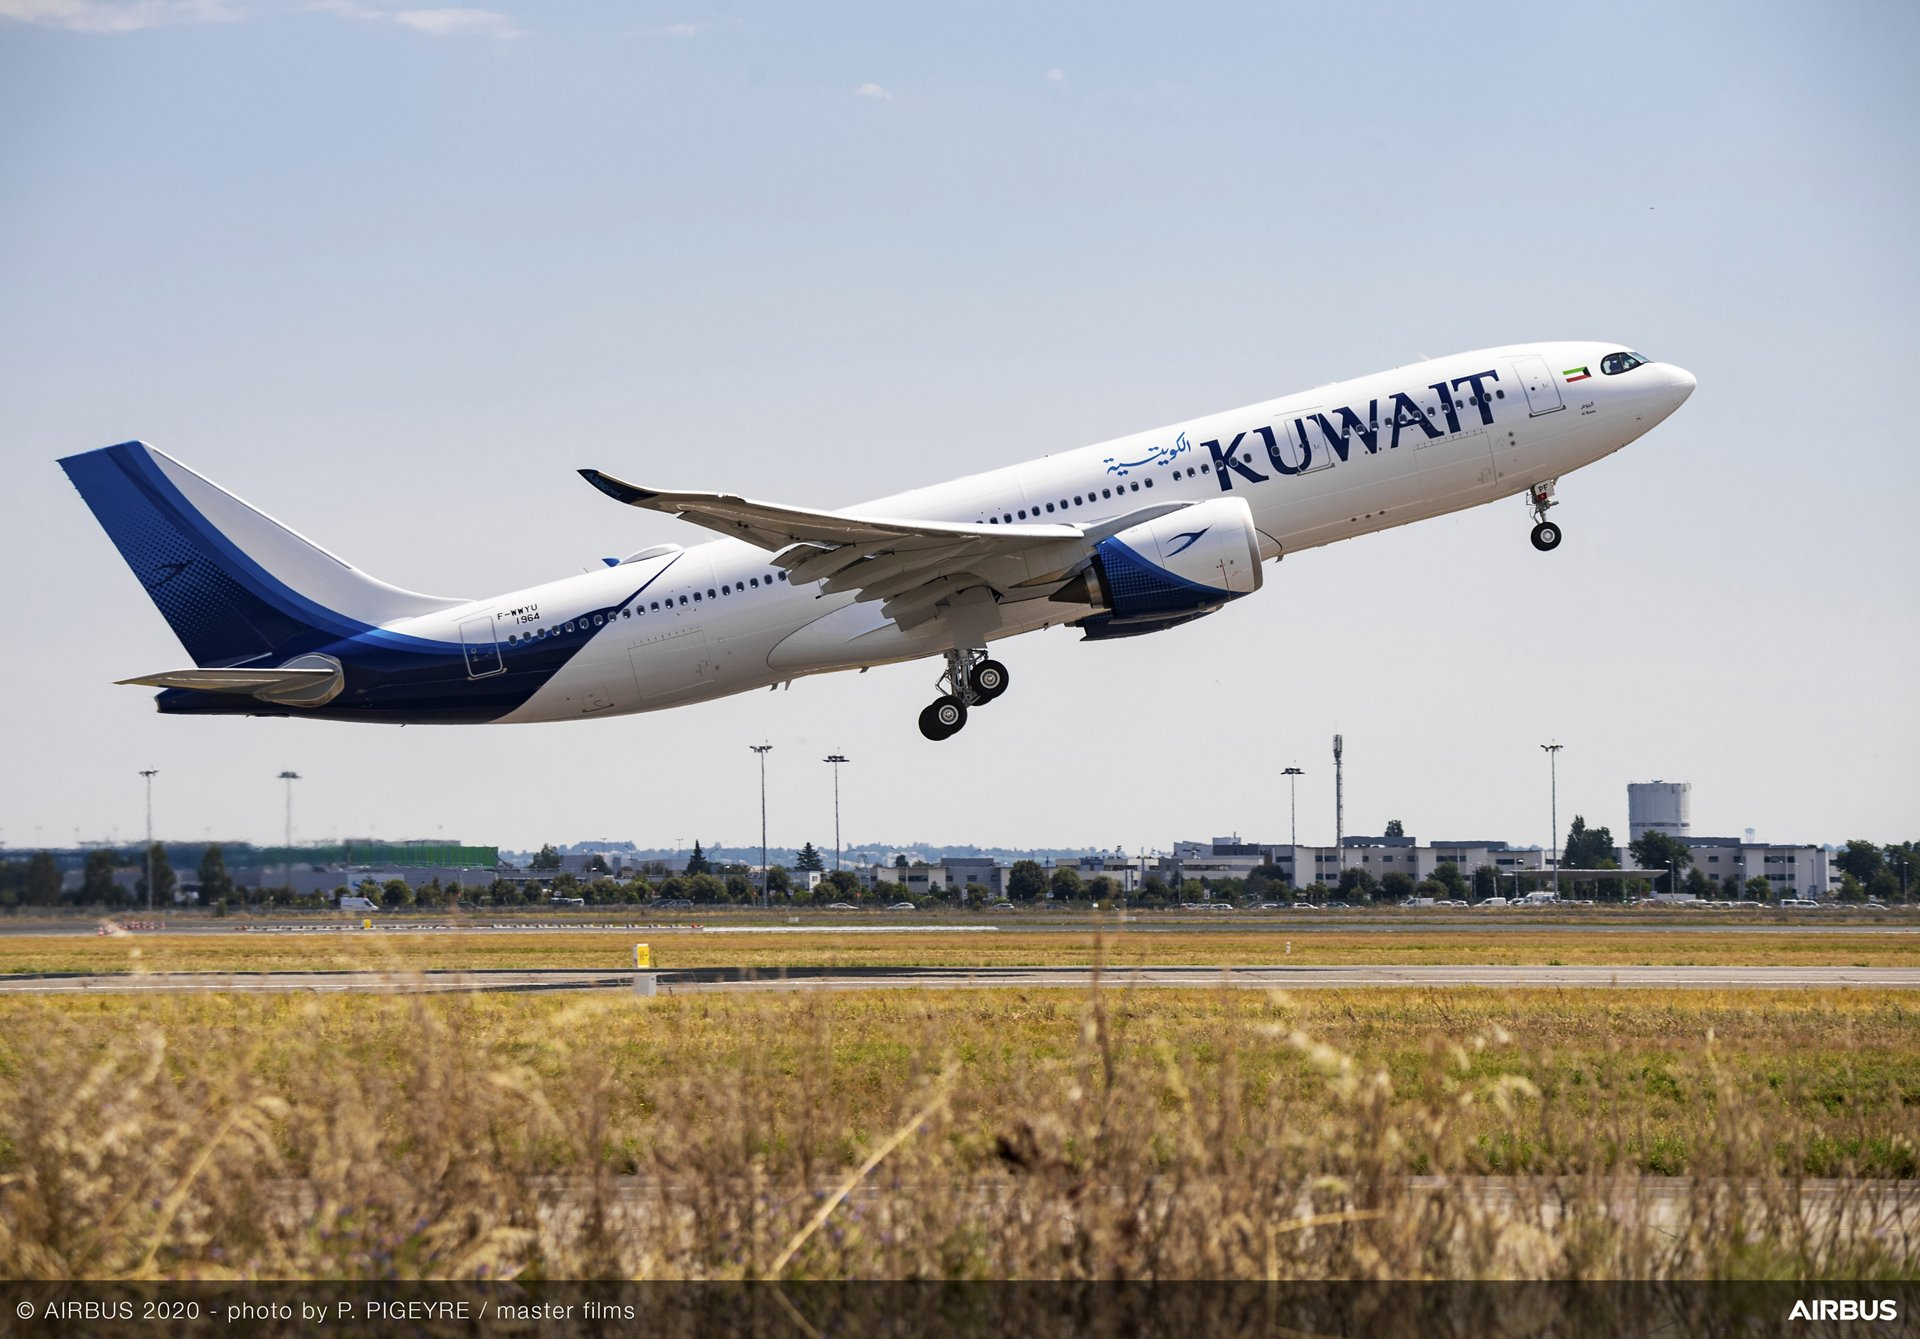 Airbus' October 2020 delivery of two A330neo aircraft for Kuwait Airways included the company's first handover of an A330-800 version